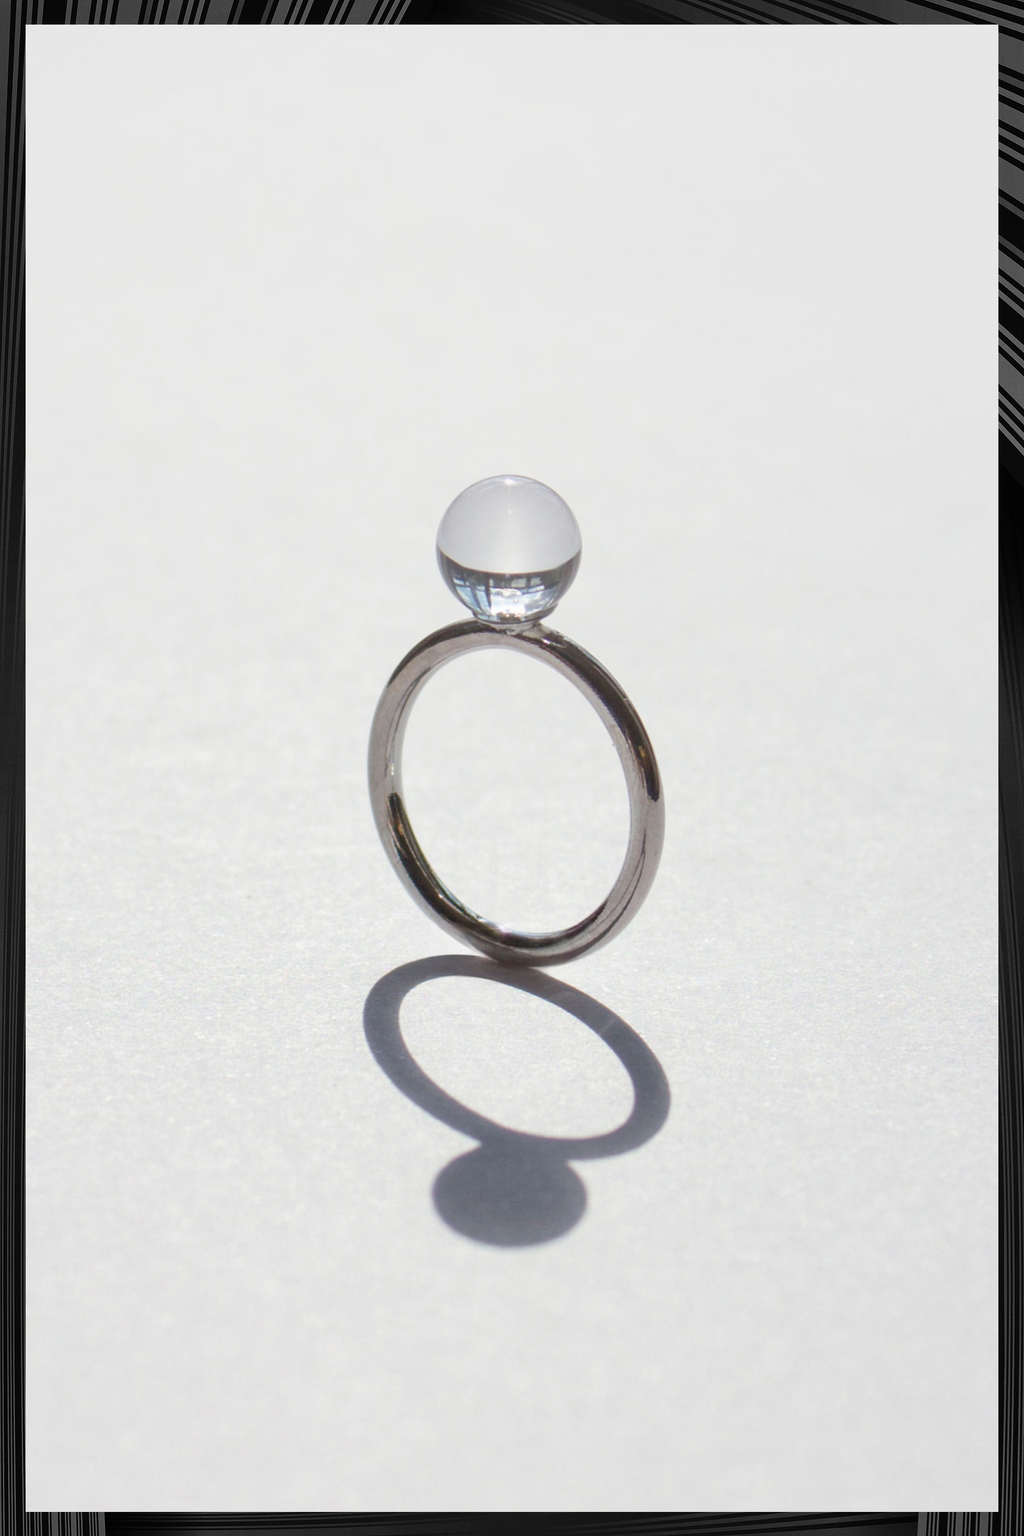 Small Clear Solo Sphere Ring | Free Delivery - 3 Week Shipping